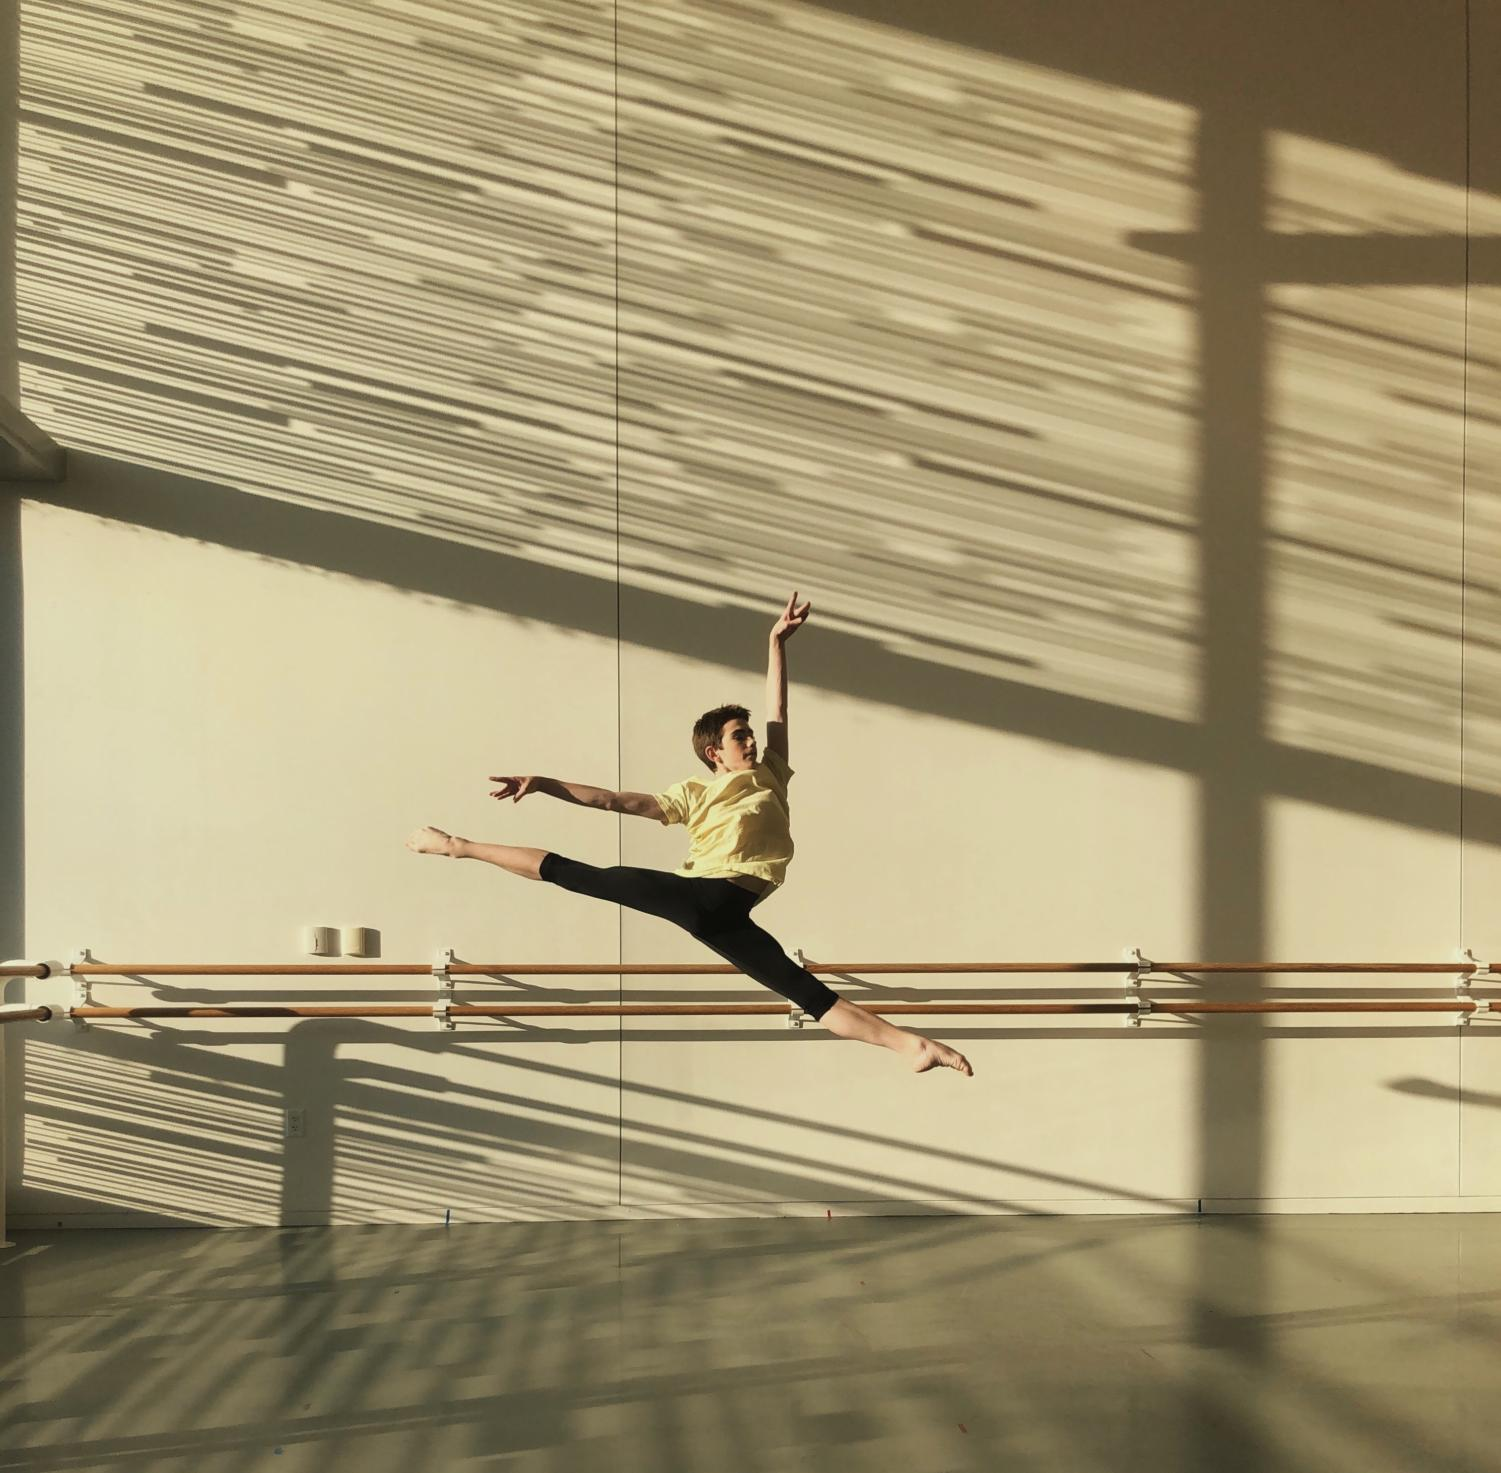 Sam Stampleman practices on strengthening his grand jeté in the dance studio.